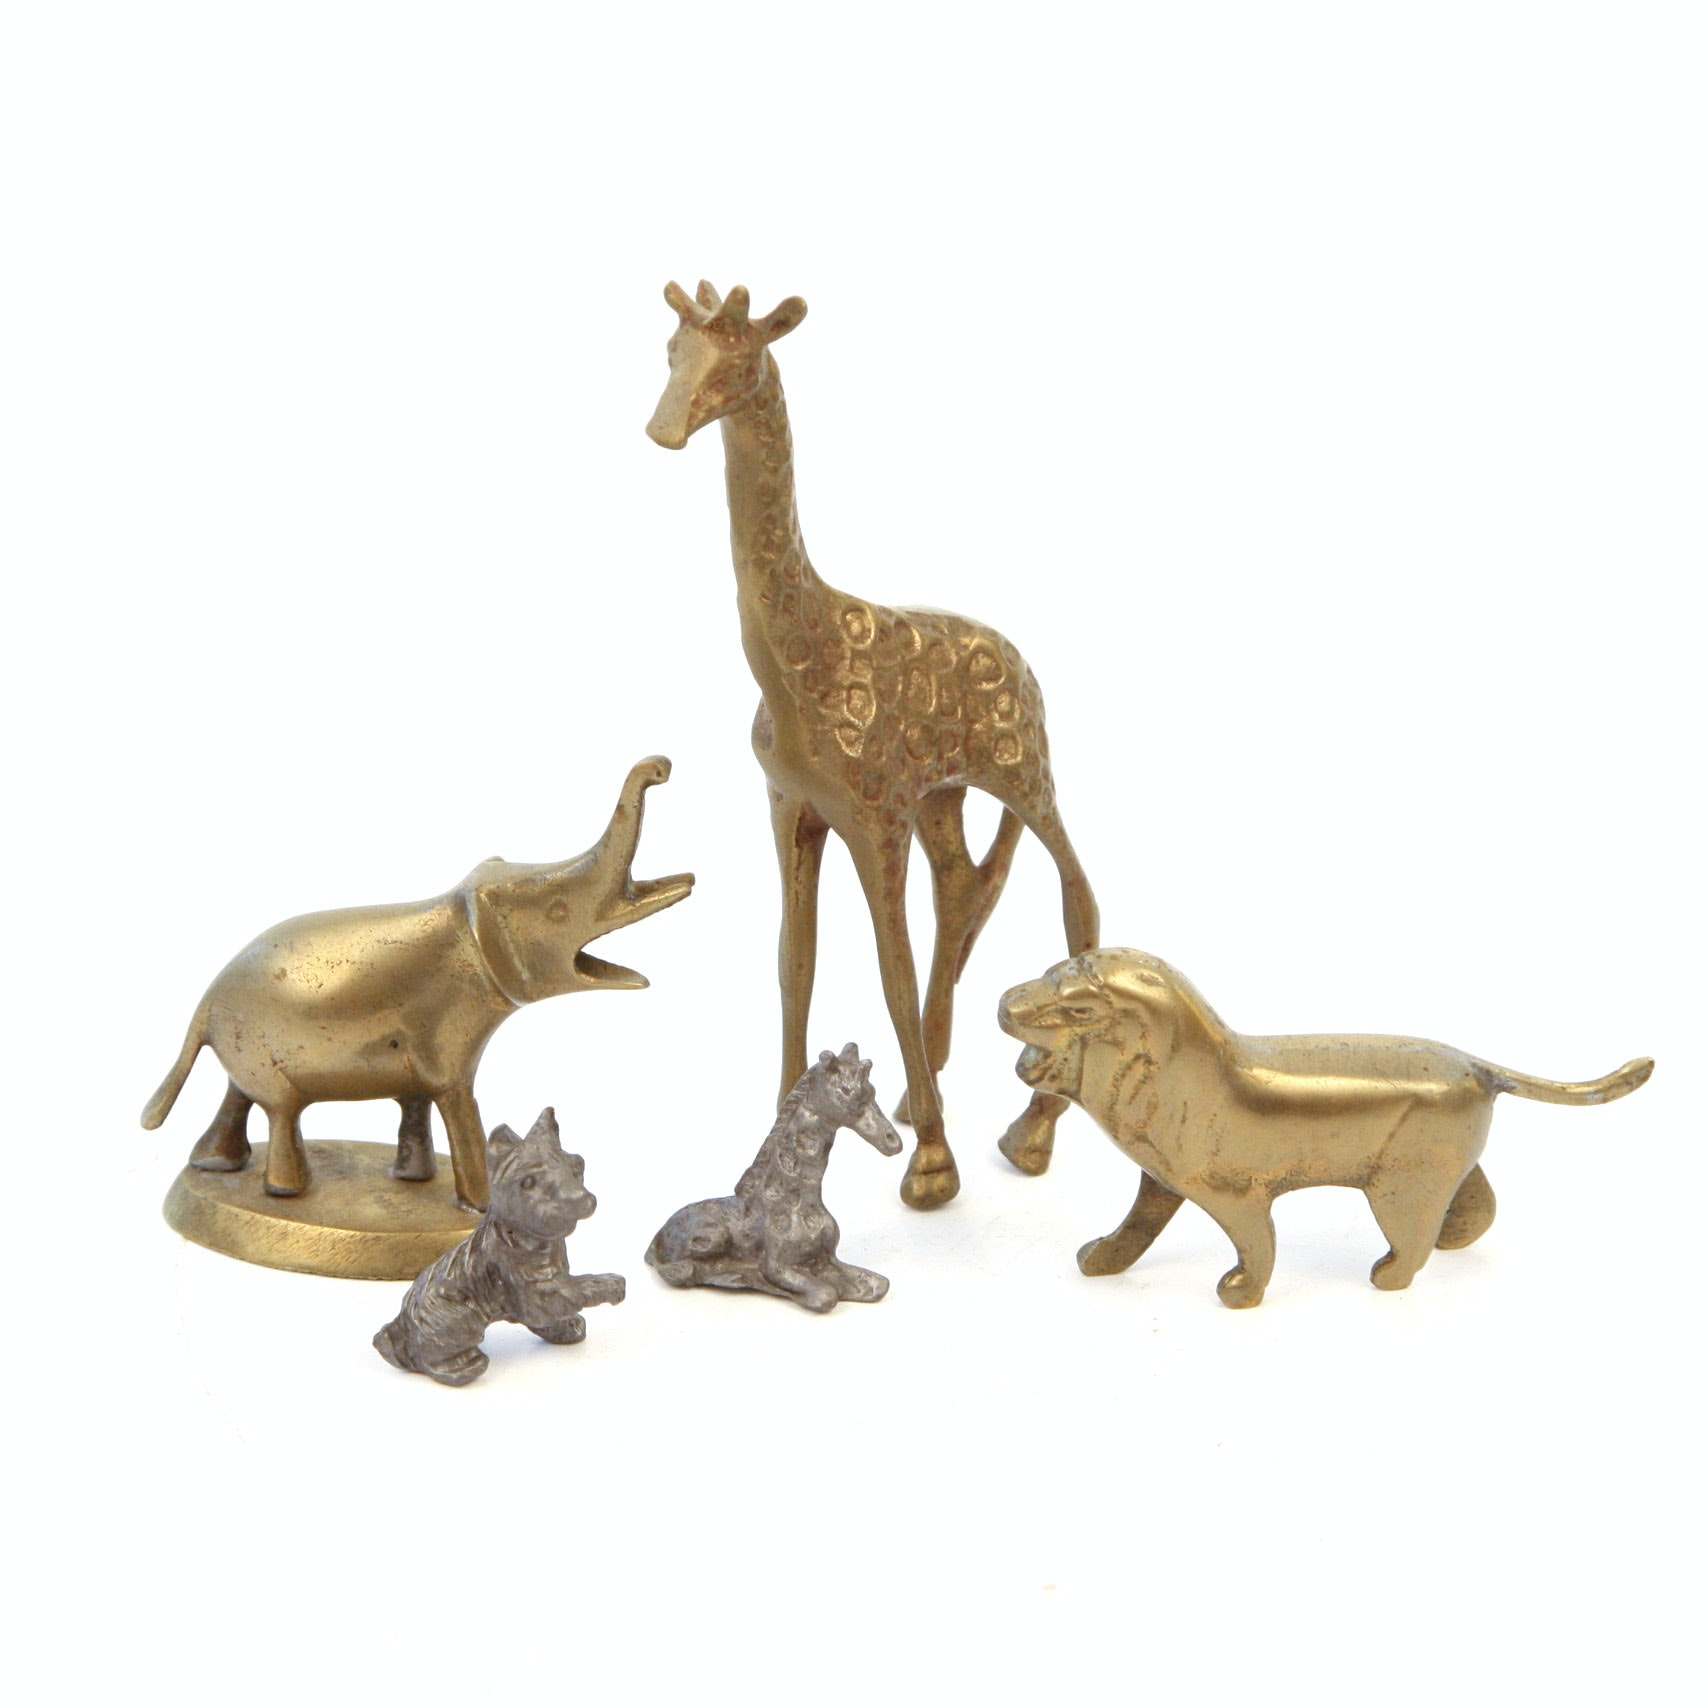 Collection of Cast Animal Figurines